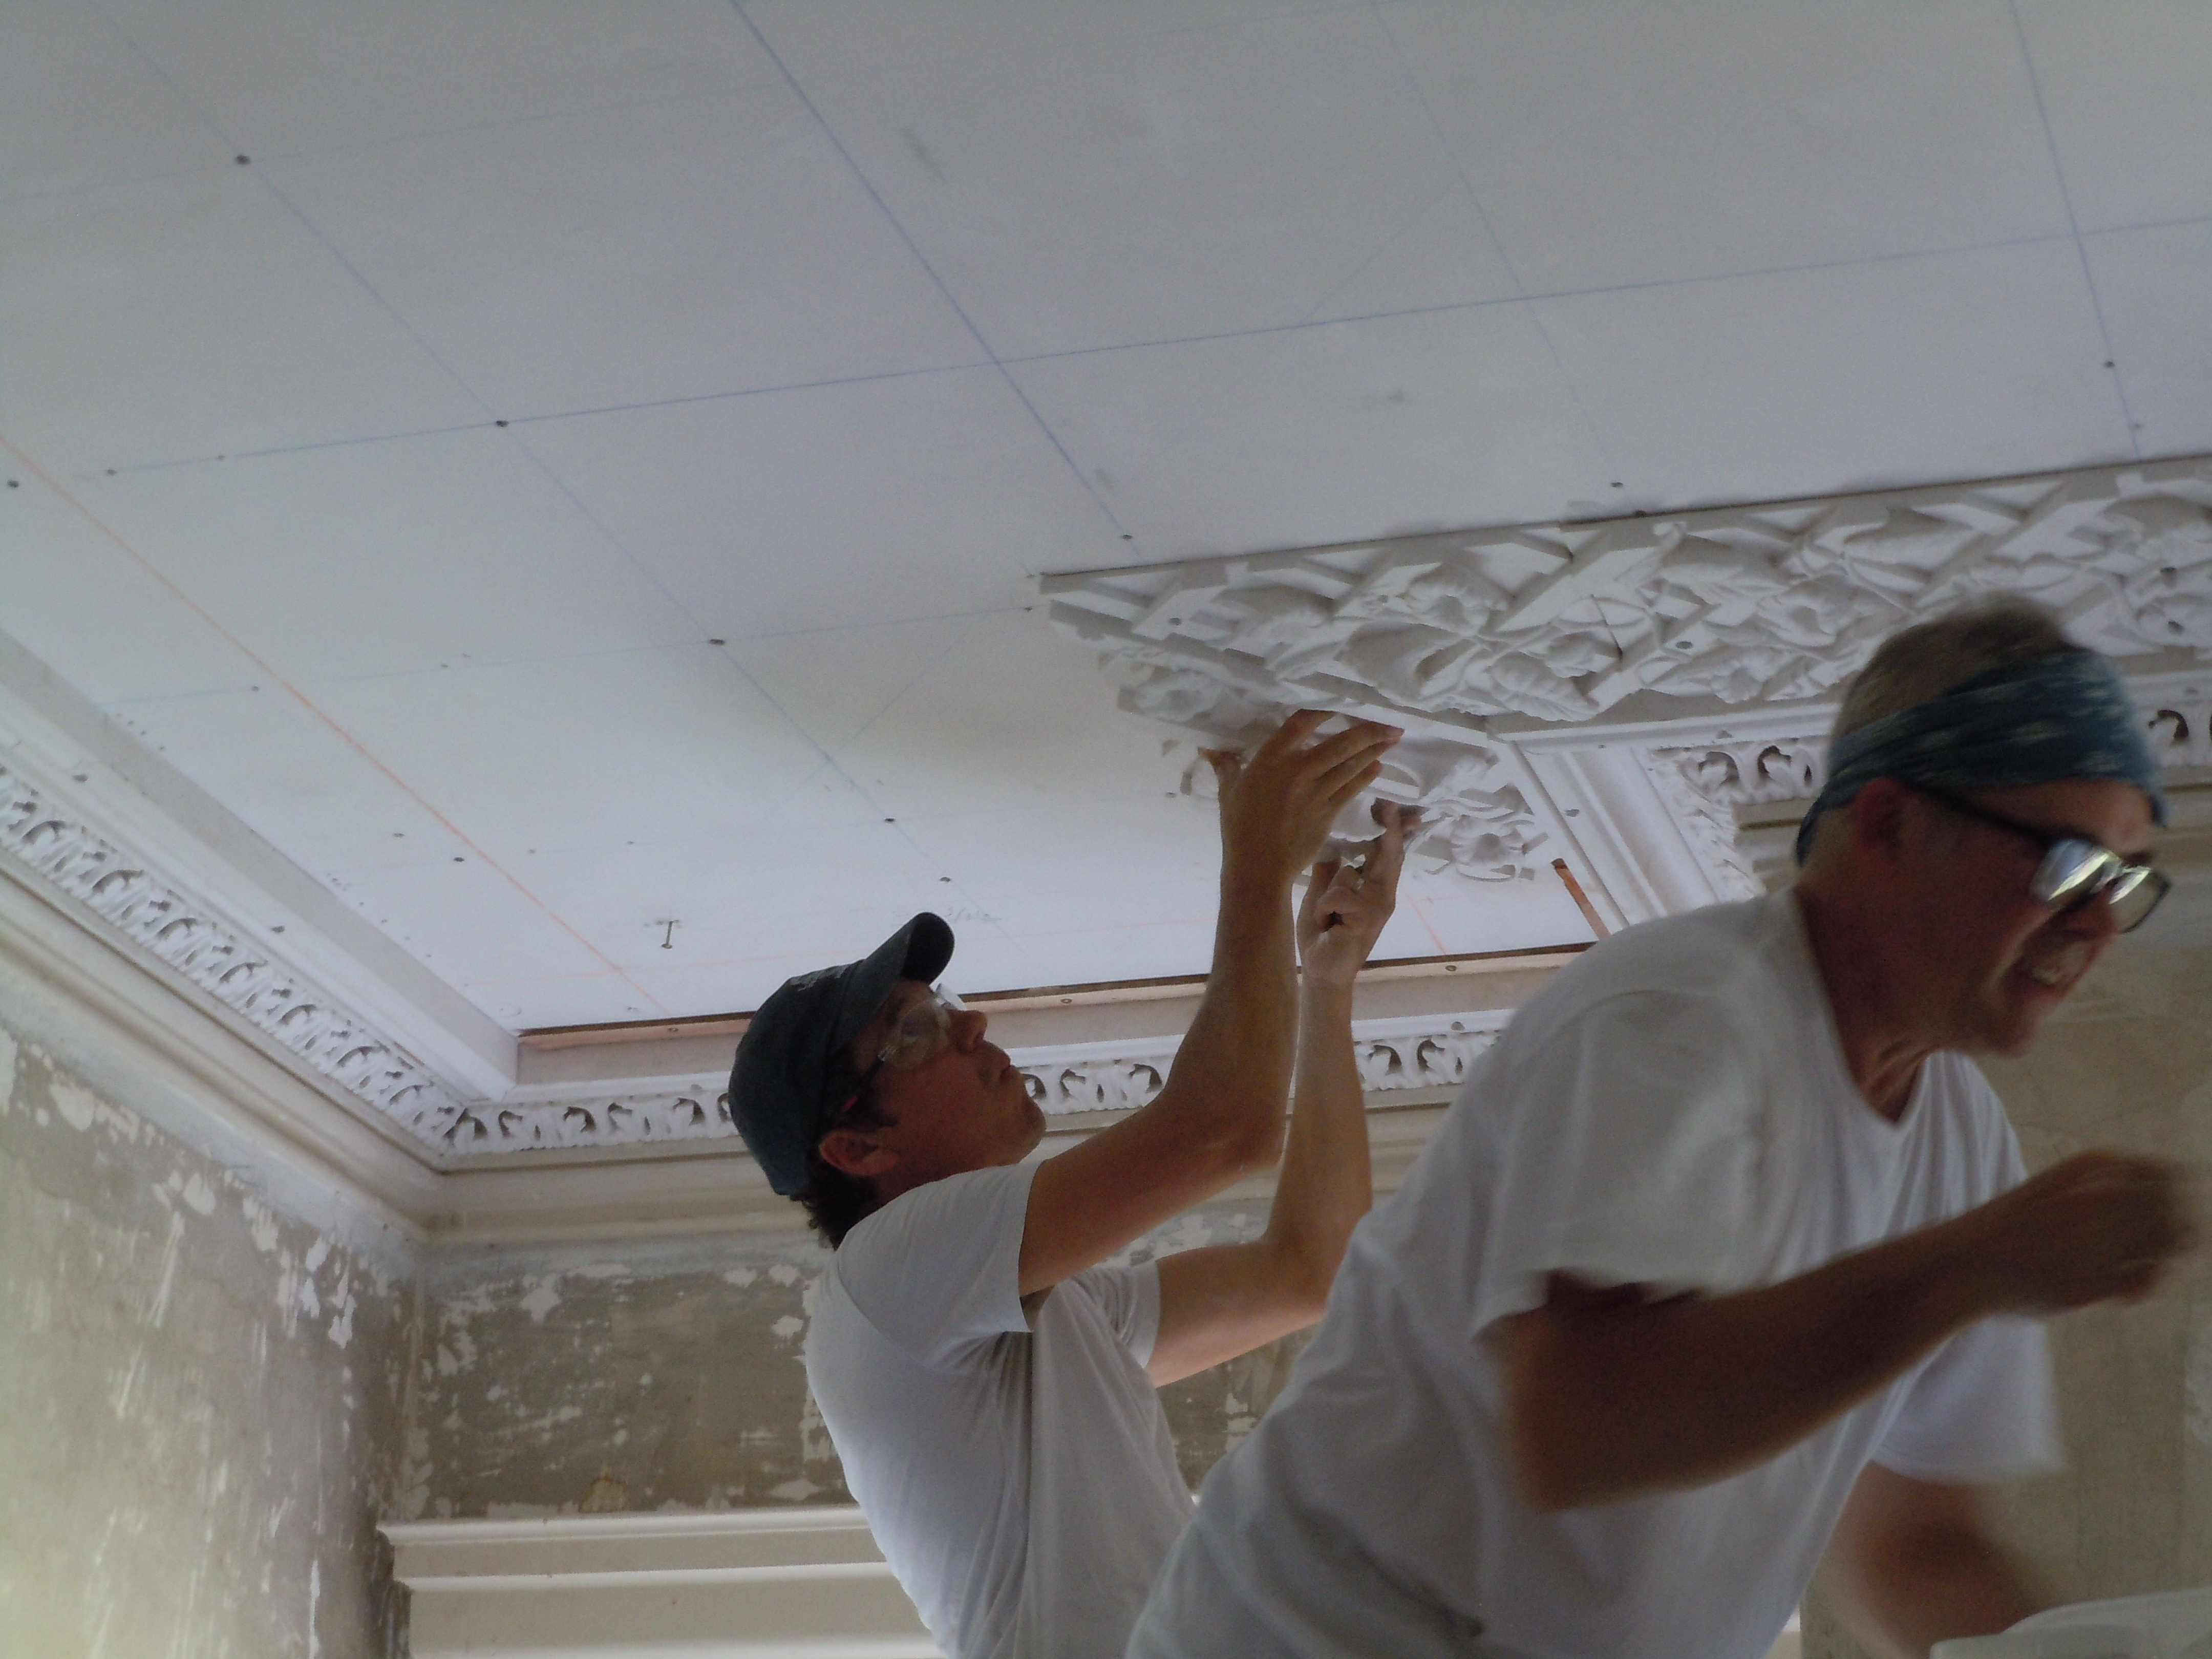 Greg Jacobs and Adam Chase of Landmark Preservation installing the perimeter plaster lattice in the front room.